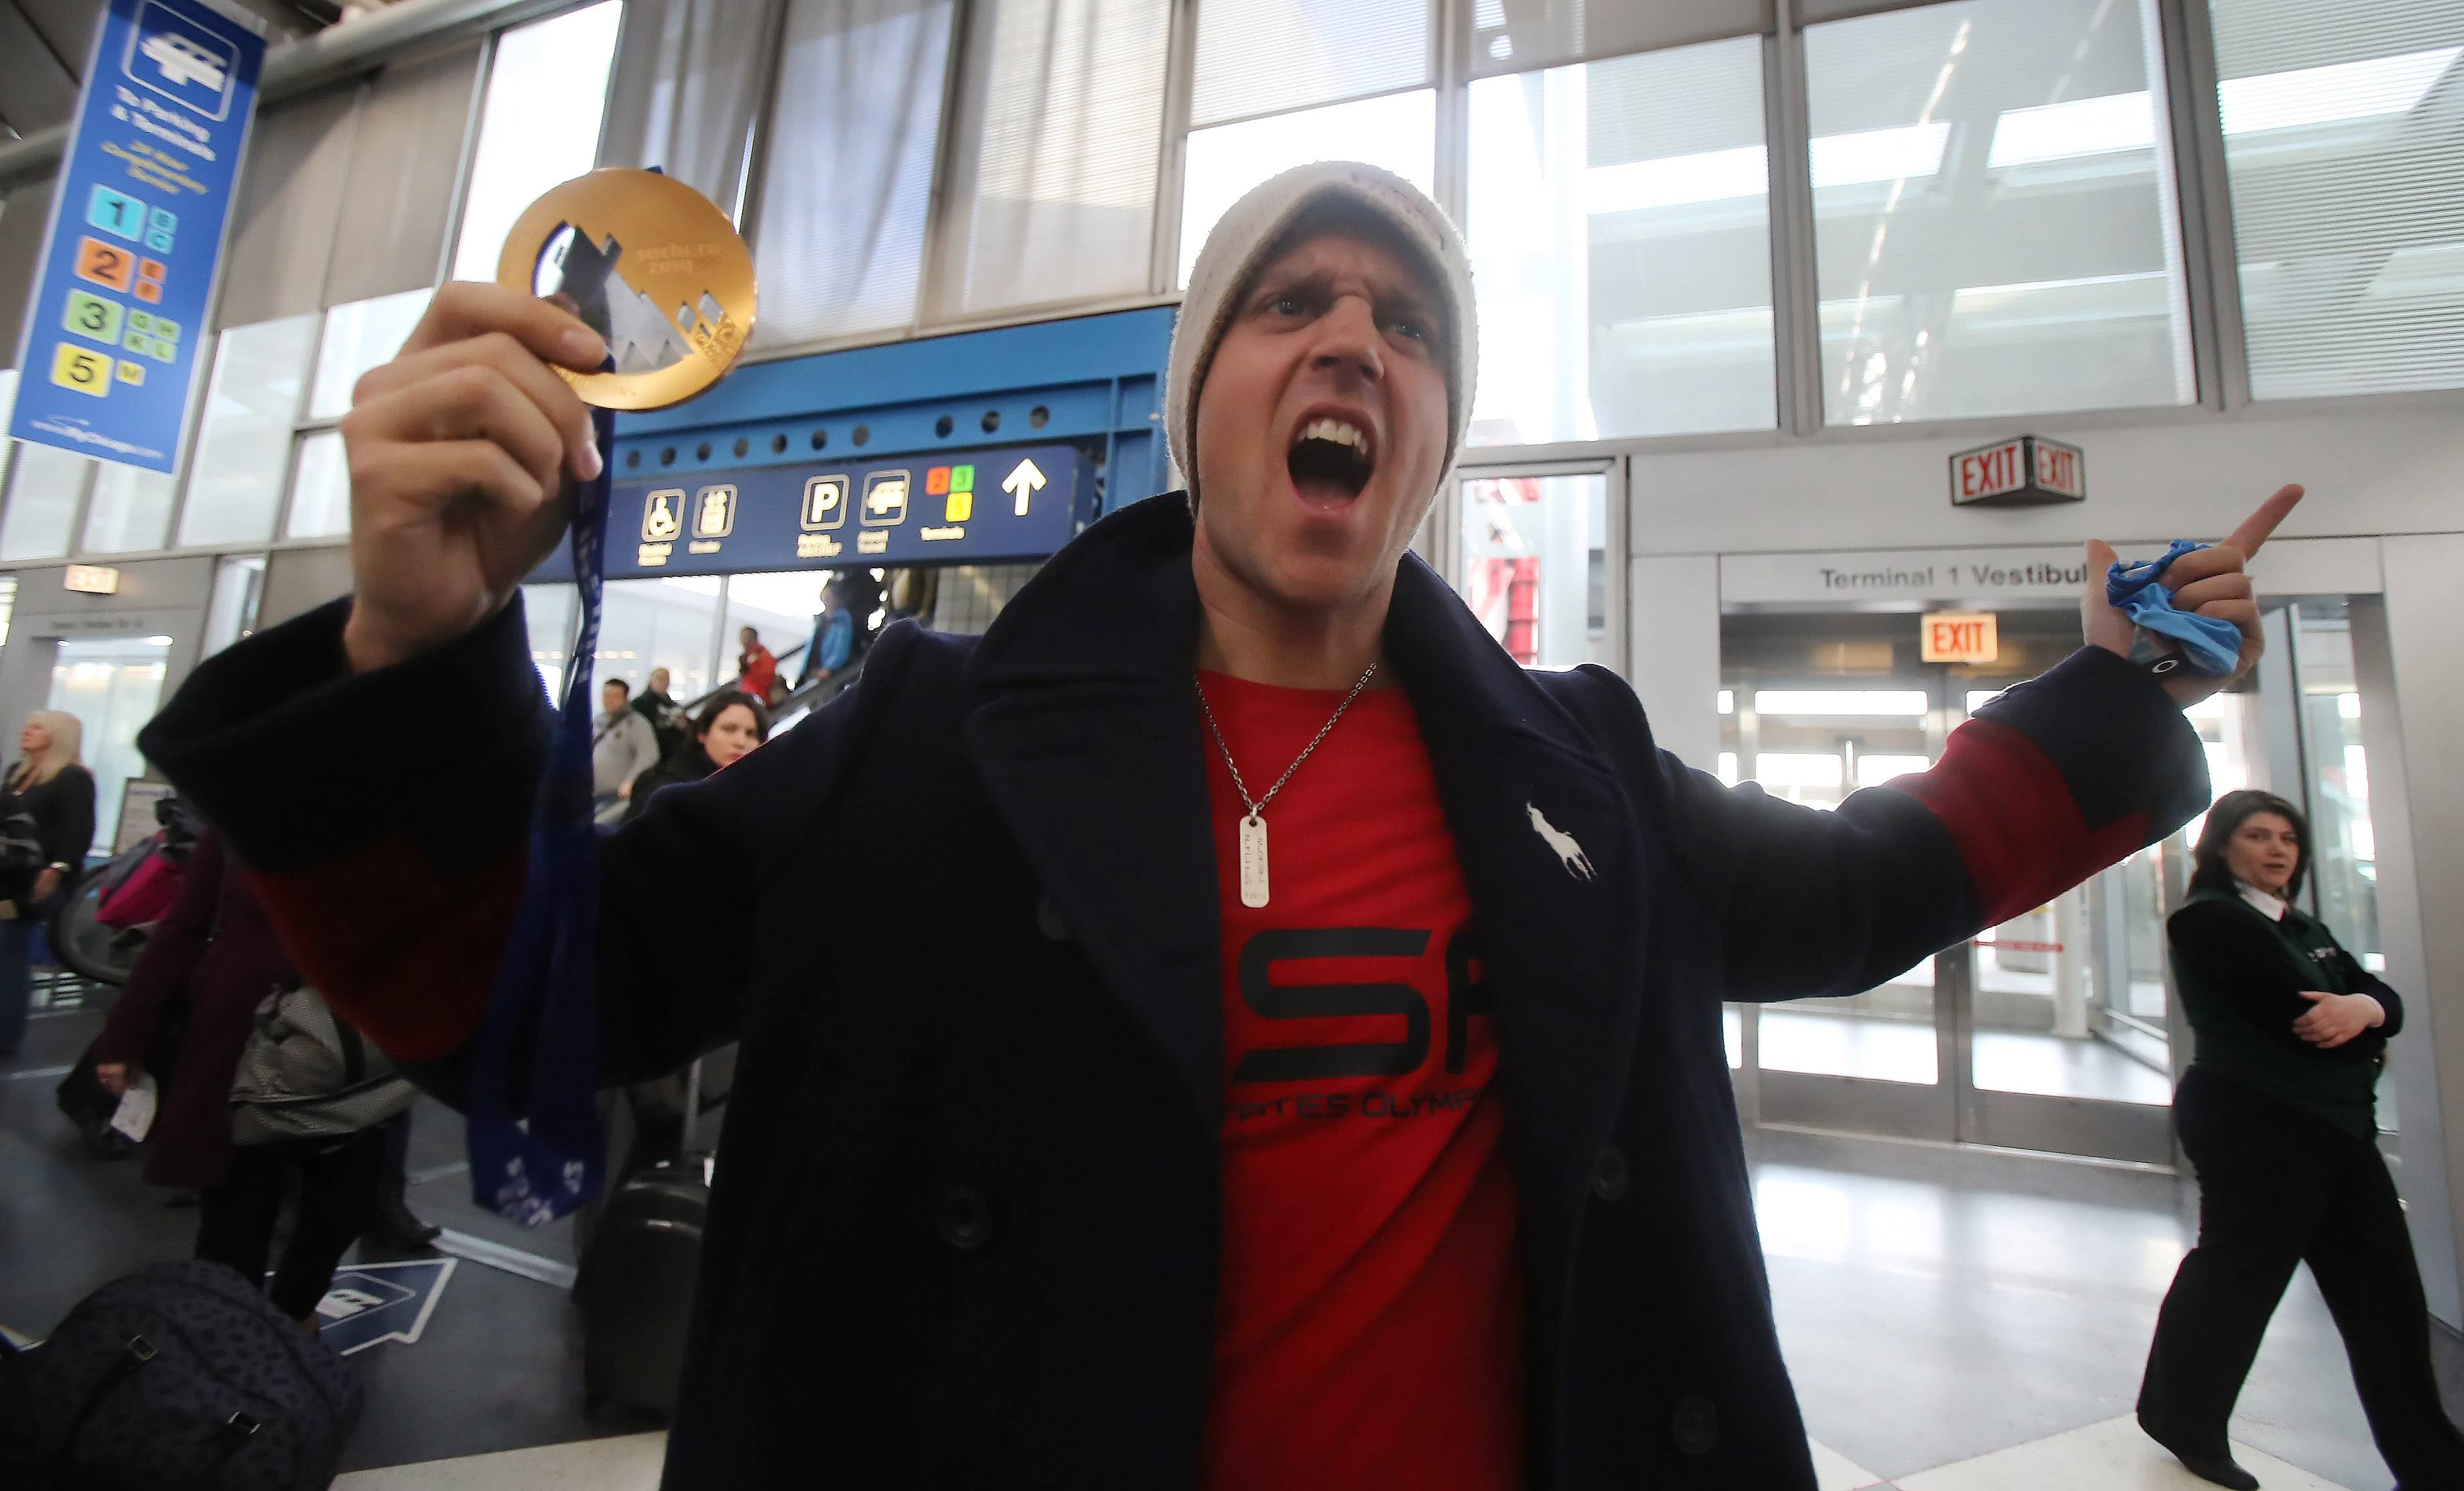 Snowboarder Alex Deibold shows off his bronze medal as winter Olympians arrive at Chicago International Airport on Monday after competing in the 2014 Sochi Olympics.